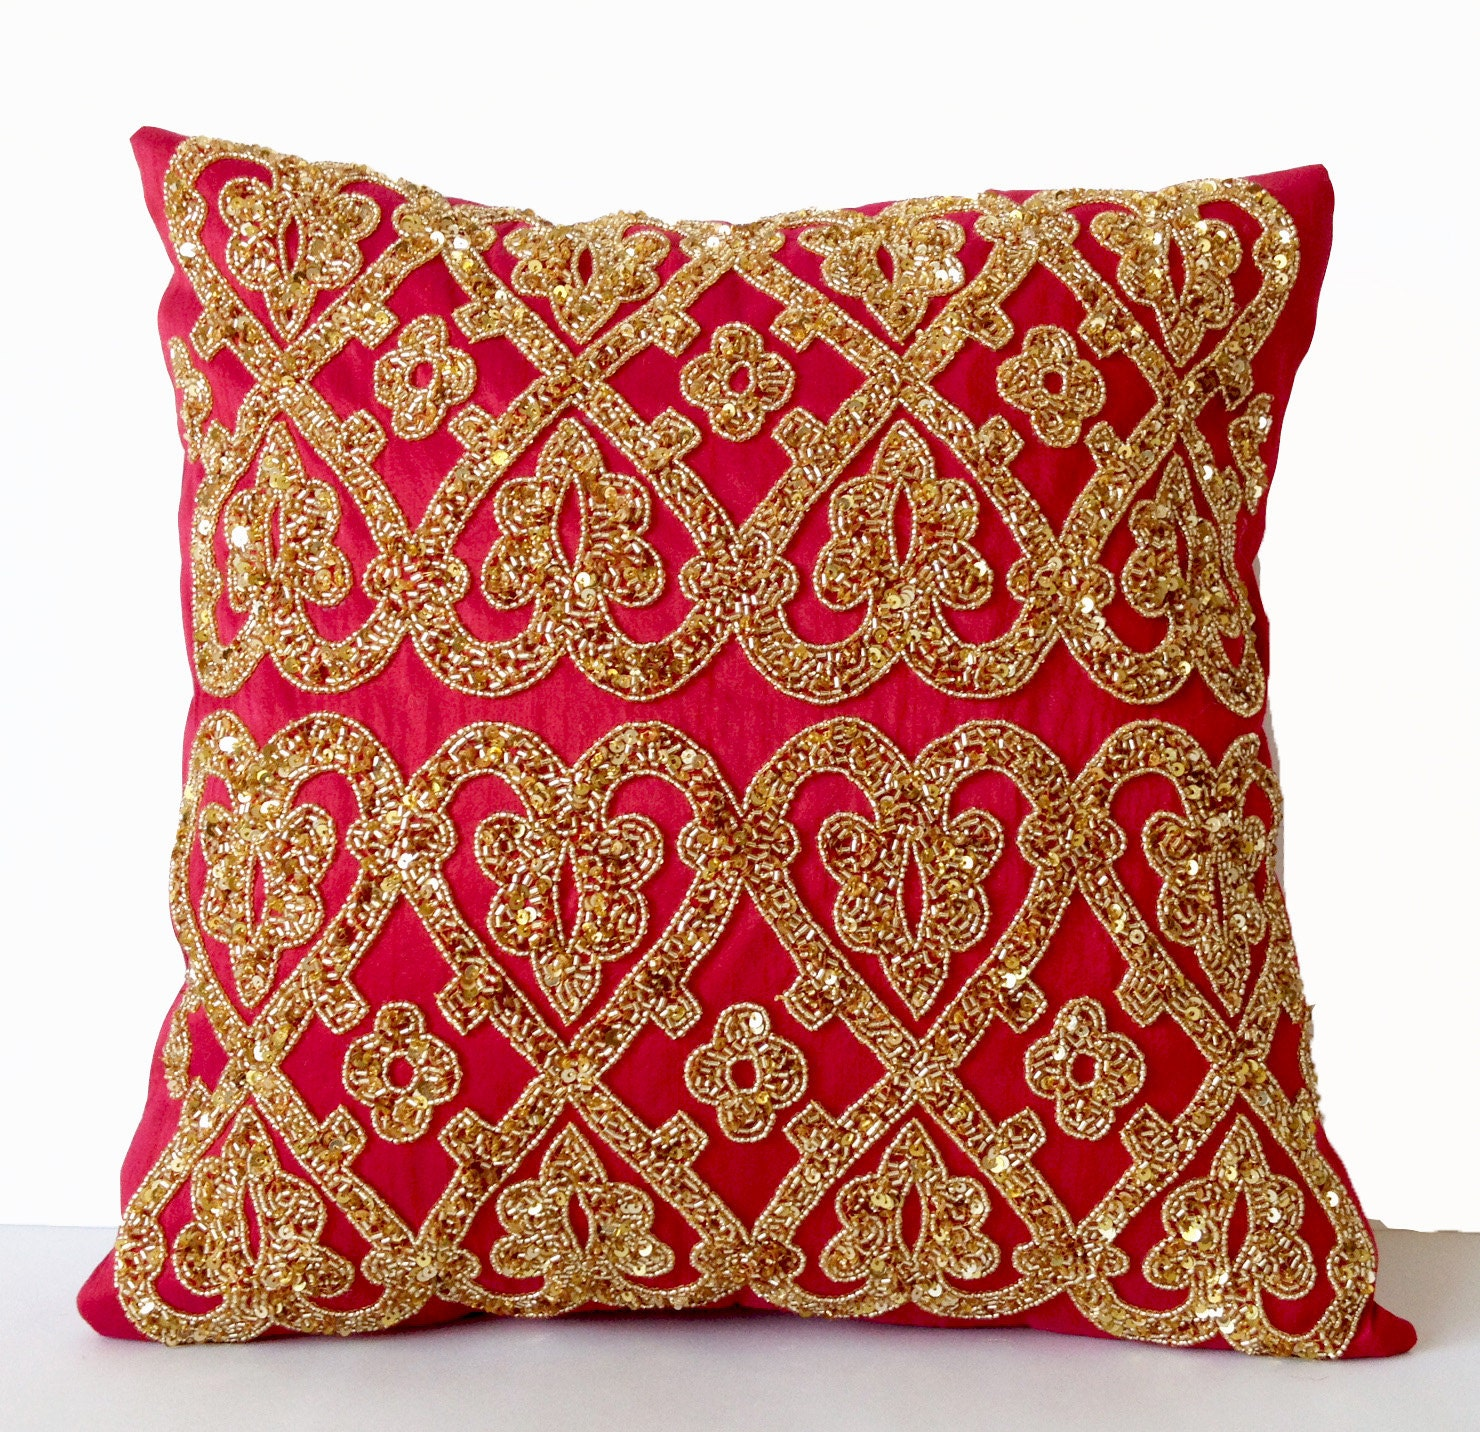 decorative pillow hot pink pillow fuchsia pillow gold. Black Bedroom Furniture Sets. Home Design Ideas